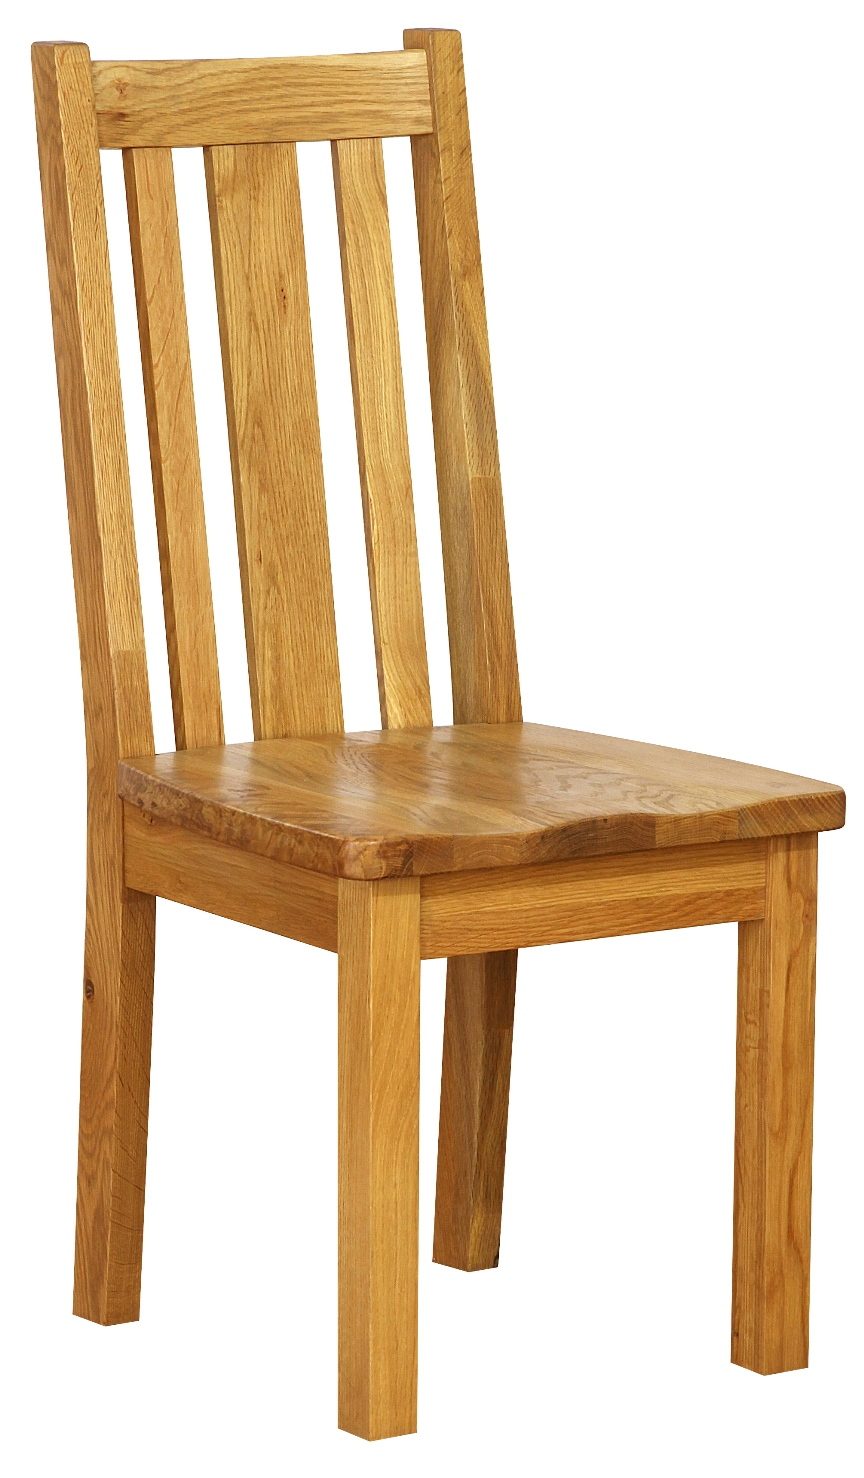 OAK COLLECTION DINING CHAIR WITH VERTICAL SLATS  w 43 x d 47 x h 54.5 cm  € 176  Product Code: NB044